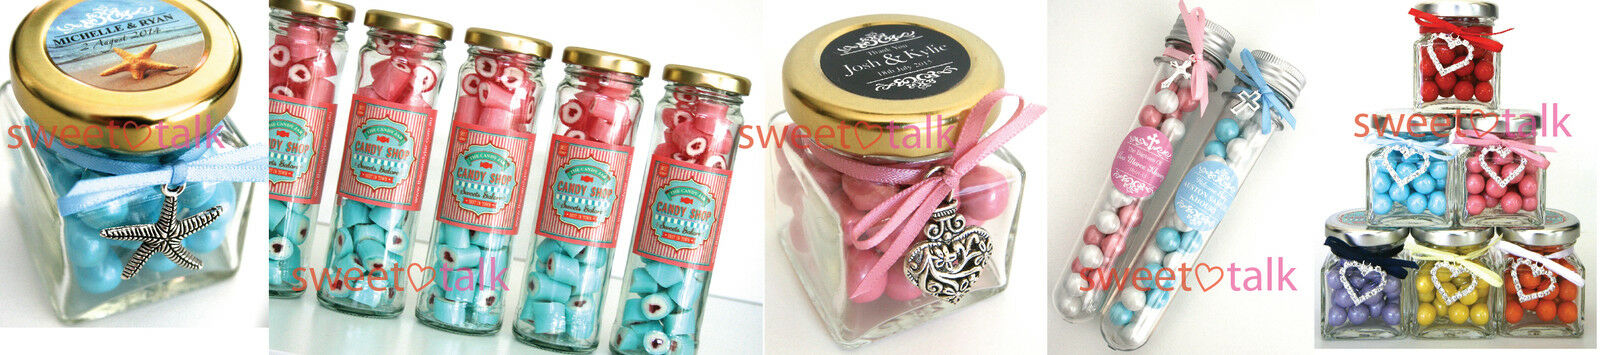 Sweet Talk - Invitations & Favours